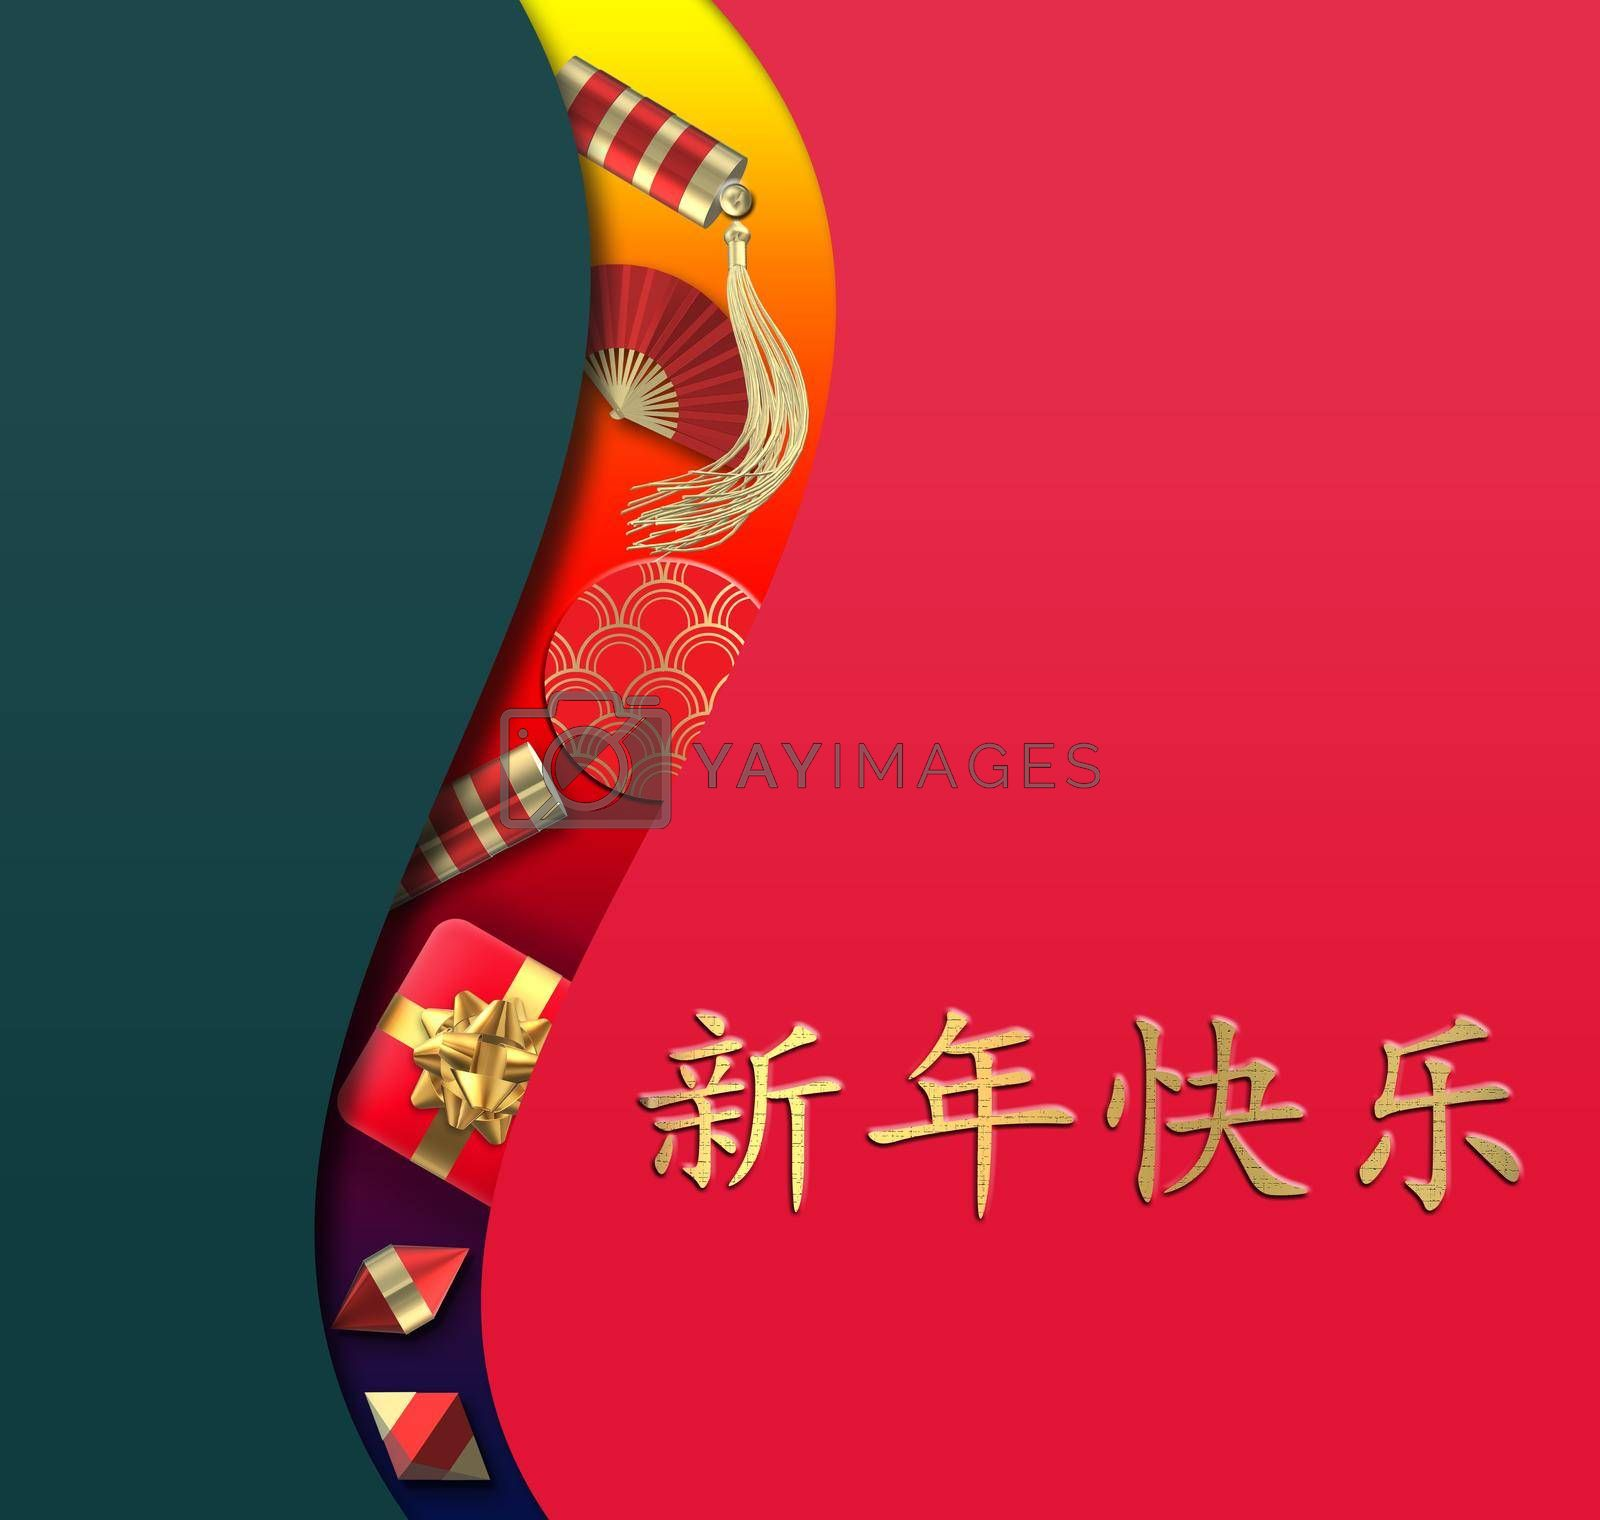 Chinese new year. Gift box, fans, crackers. Oriental Asian symbols on curve red blue. Gold Chinese text Happy New Year on red background. 3D render